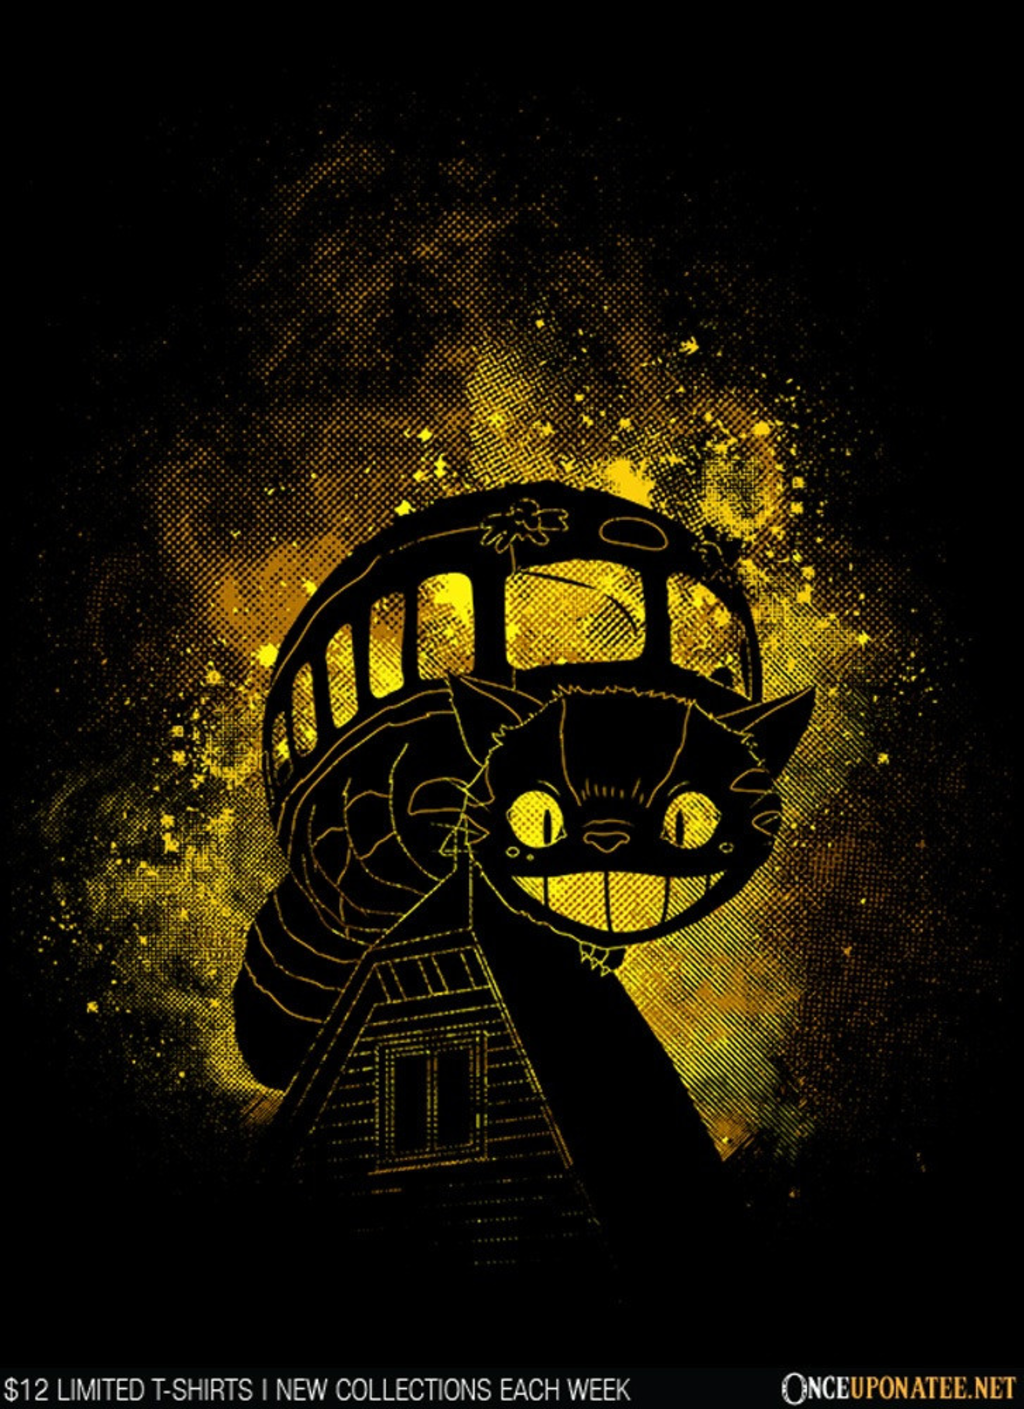 Once Upon a Tee: Catbus Art